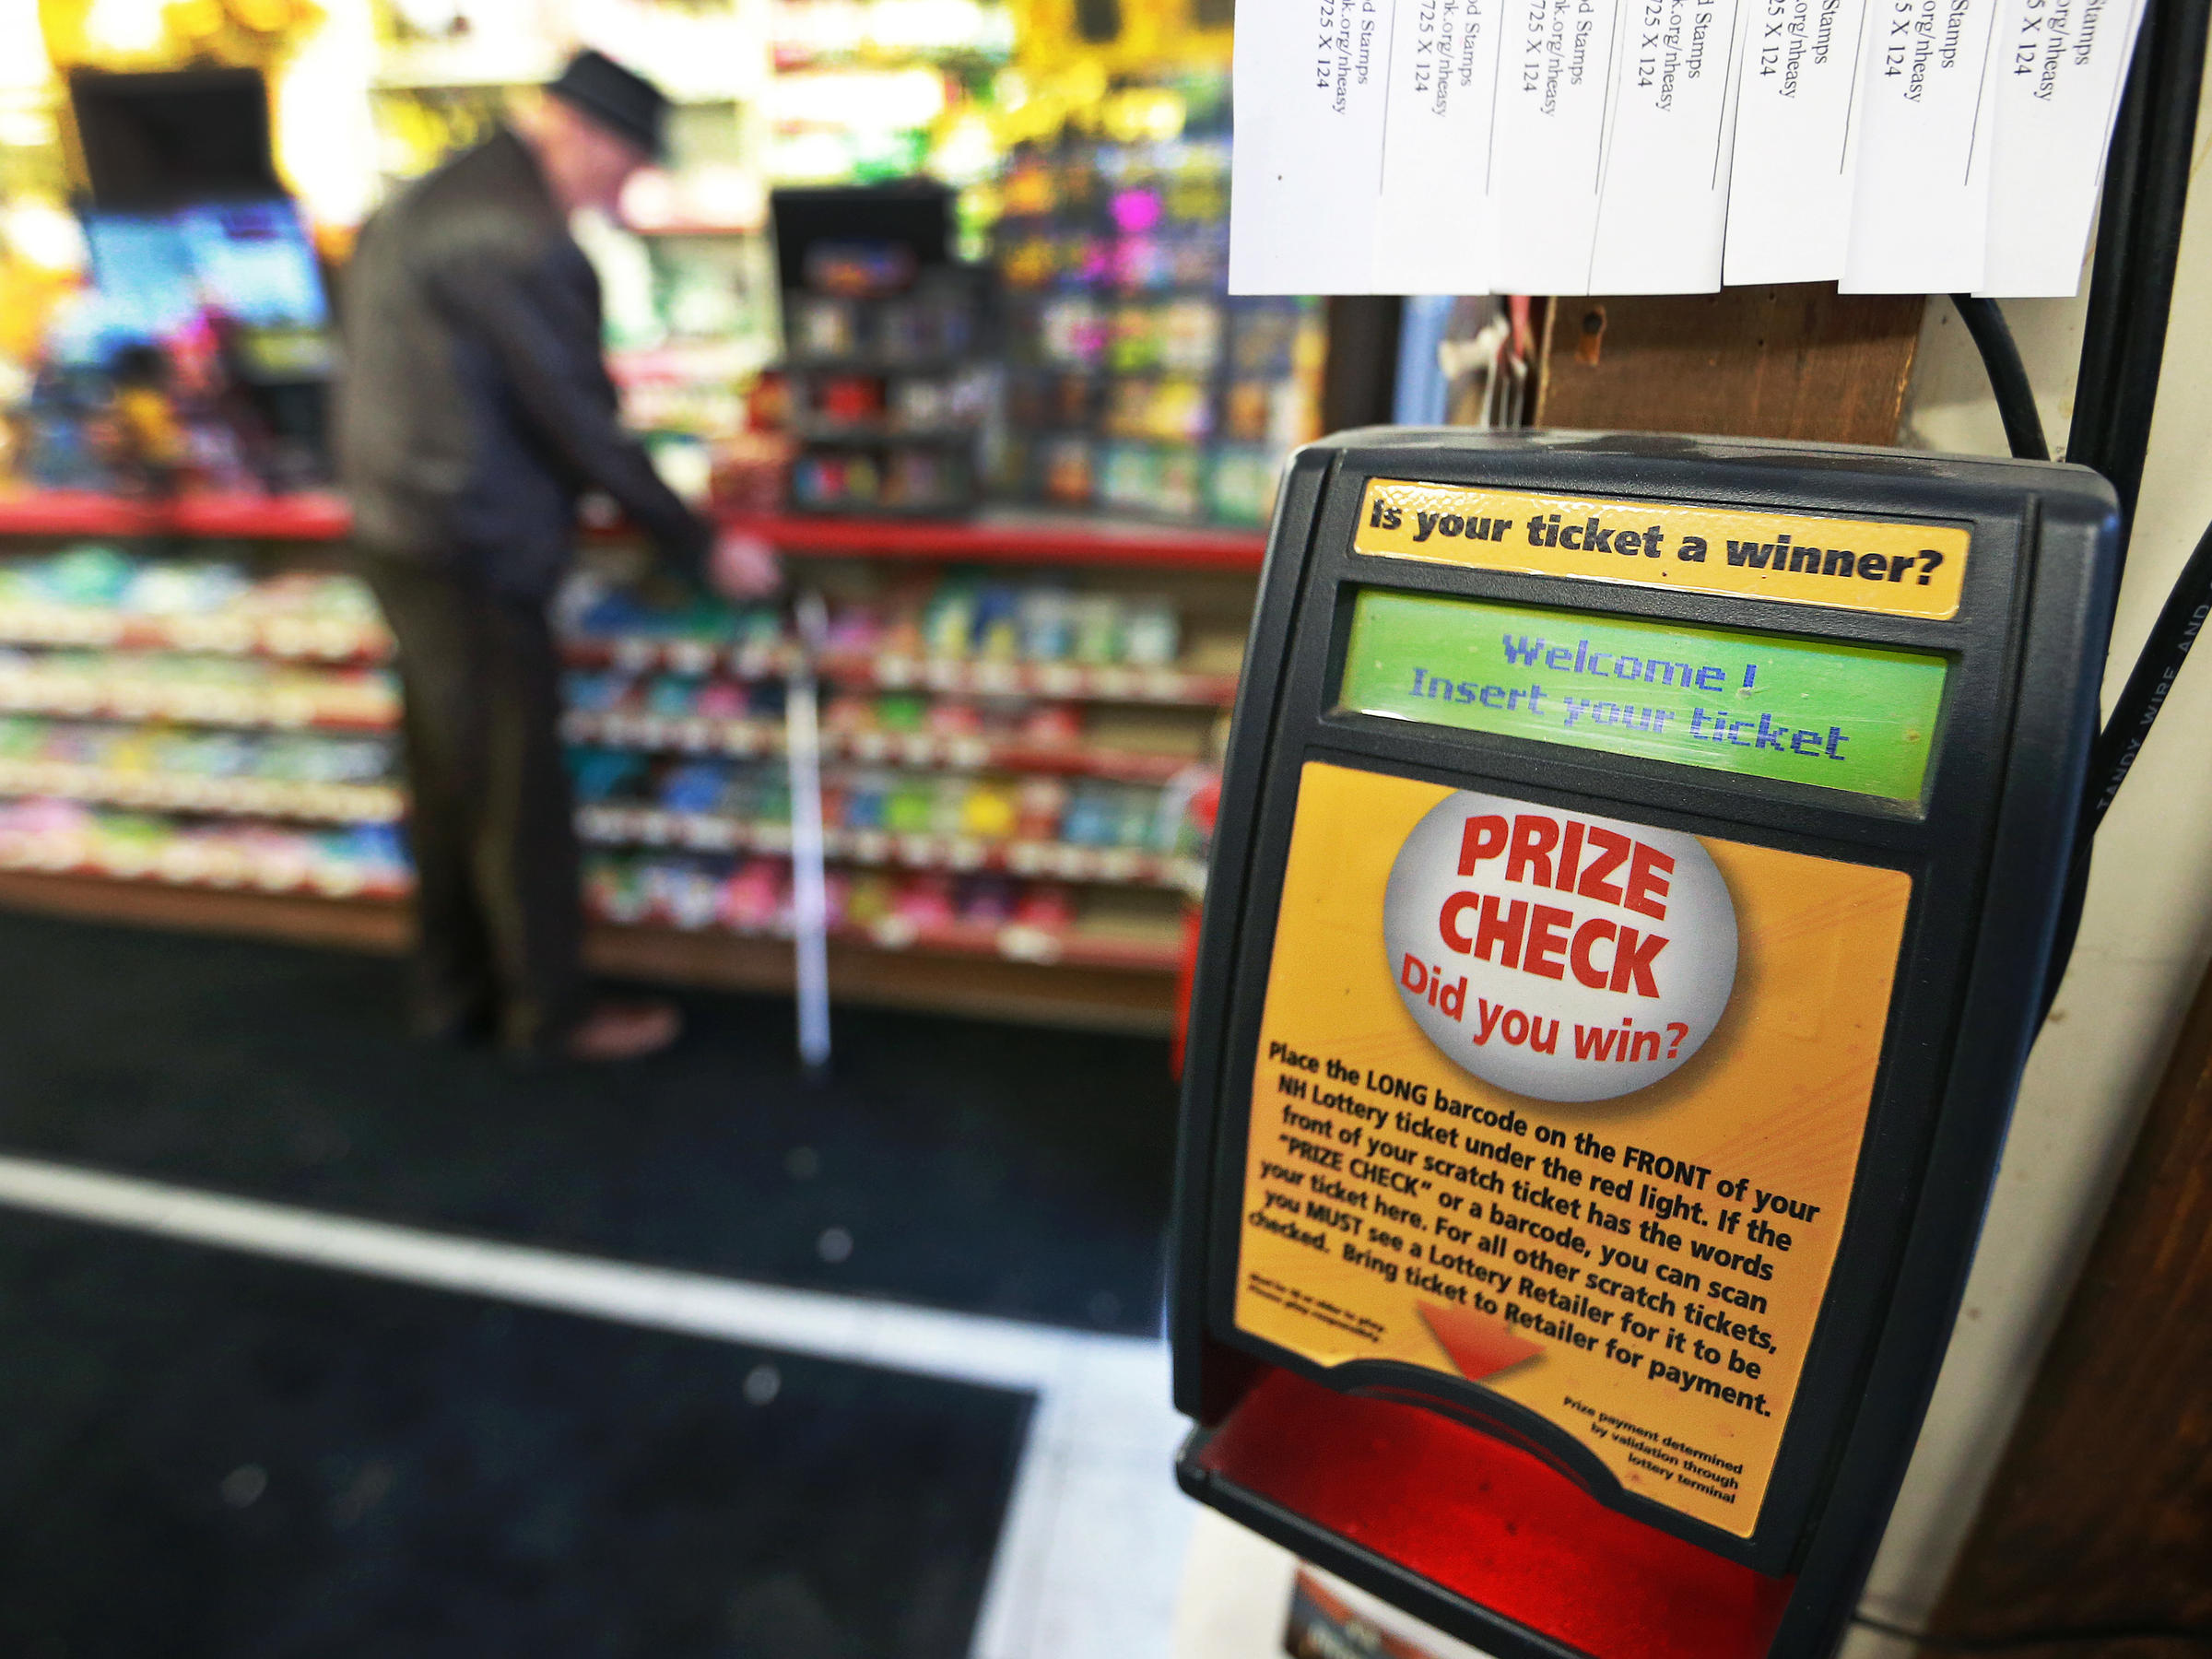 Still-Unidentified Lottery Winner Gets Her Dough … But Will She Stay Anonymous?